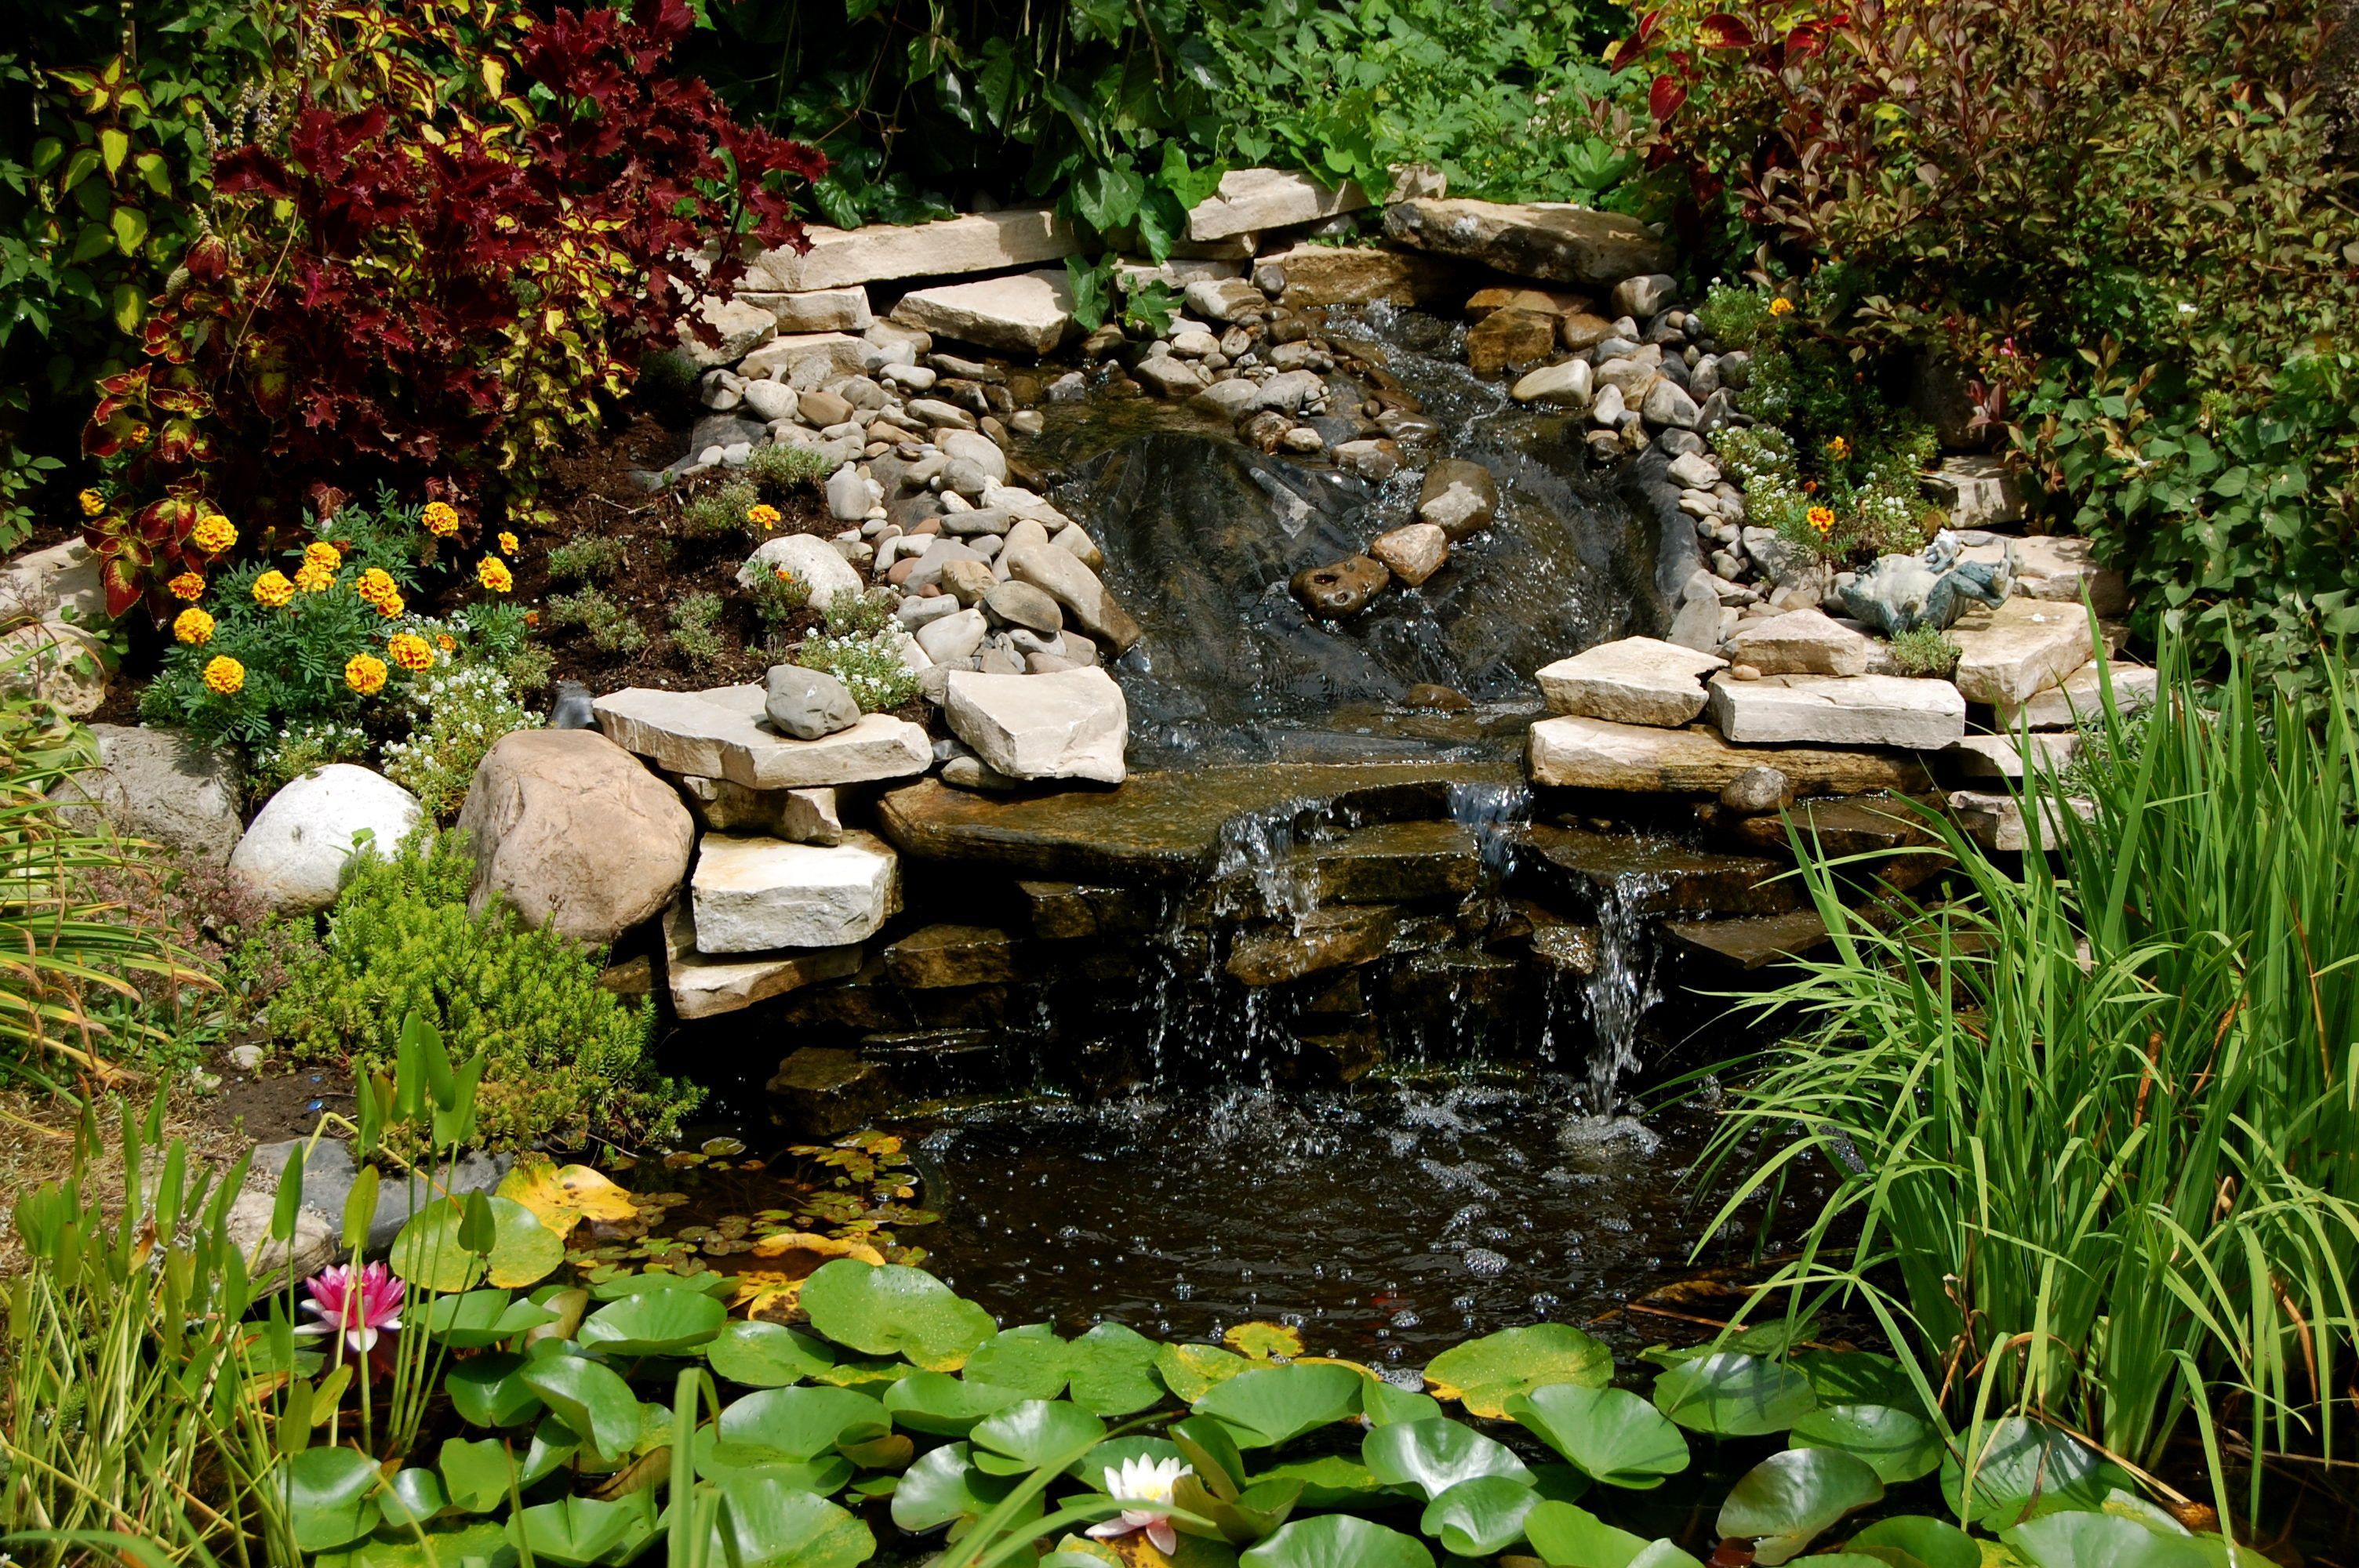 Fish pond w lily pads fish stuff pinterest for Fish pond stuff